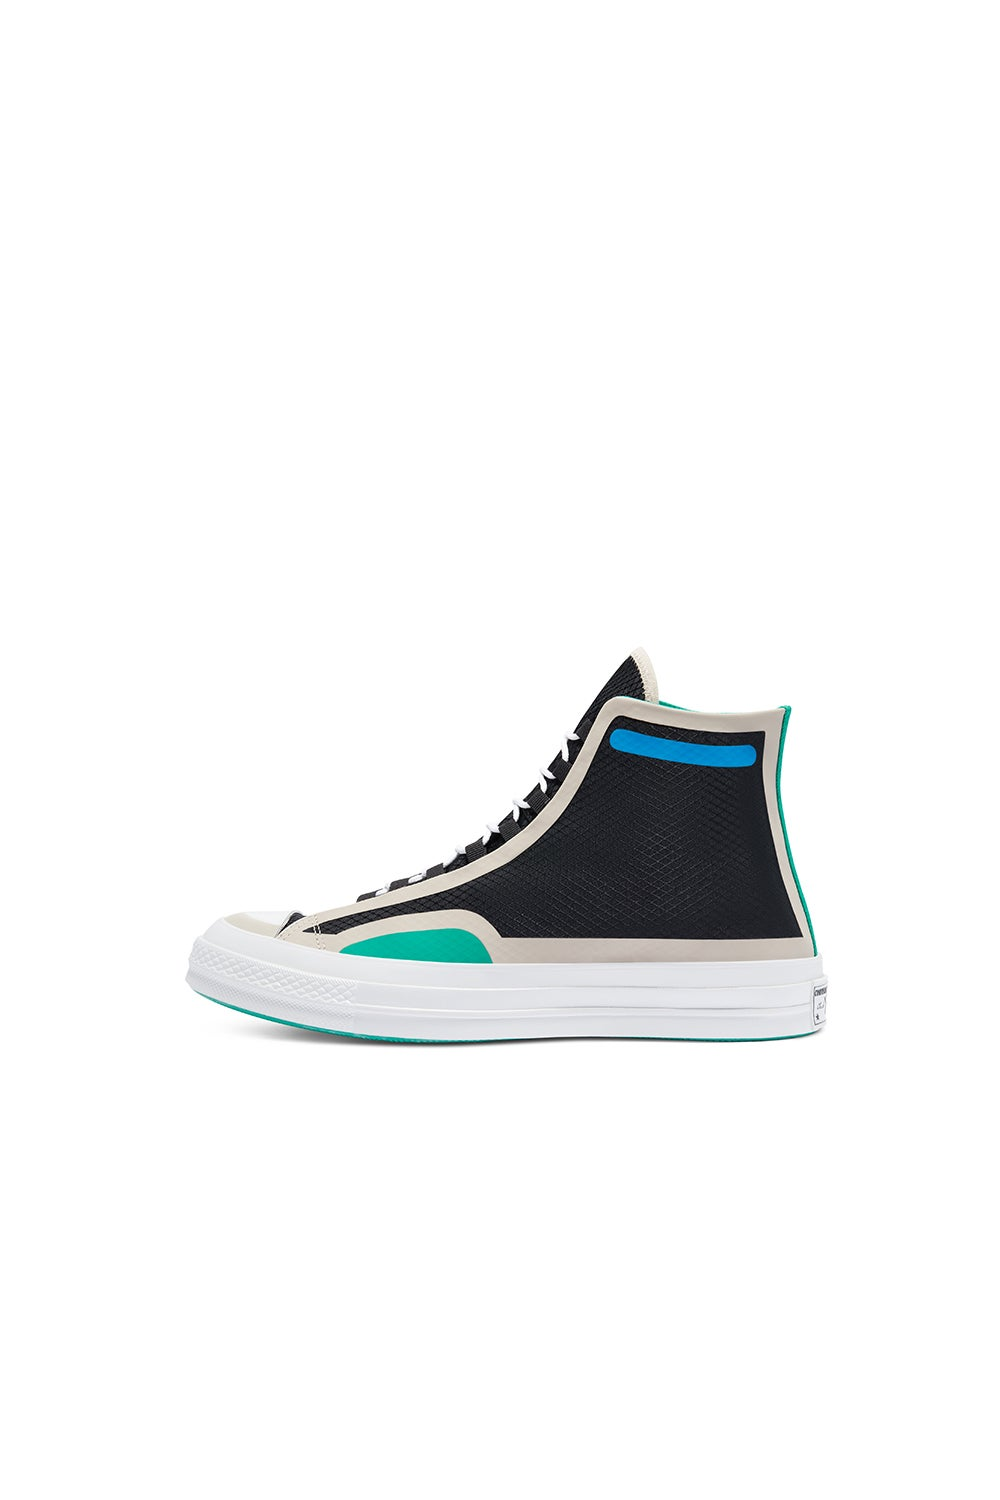 Converse Chuck Taylor All Star Trail Hi Top Black/Digital Blue